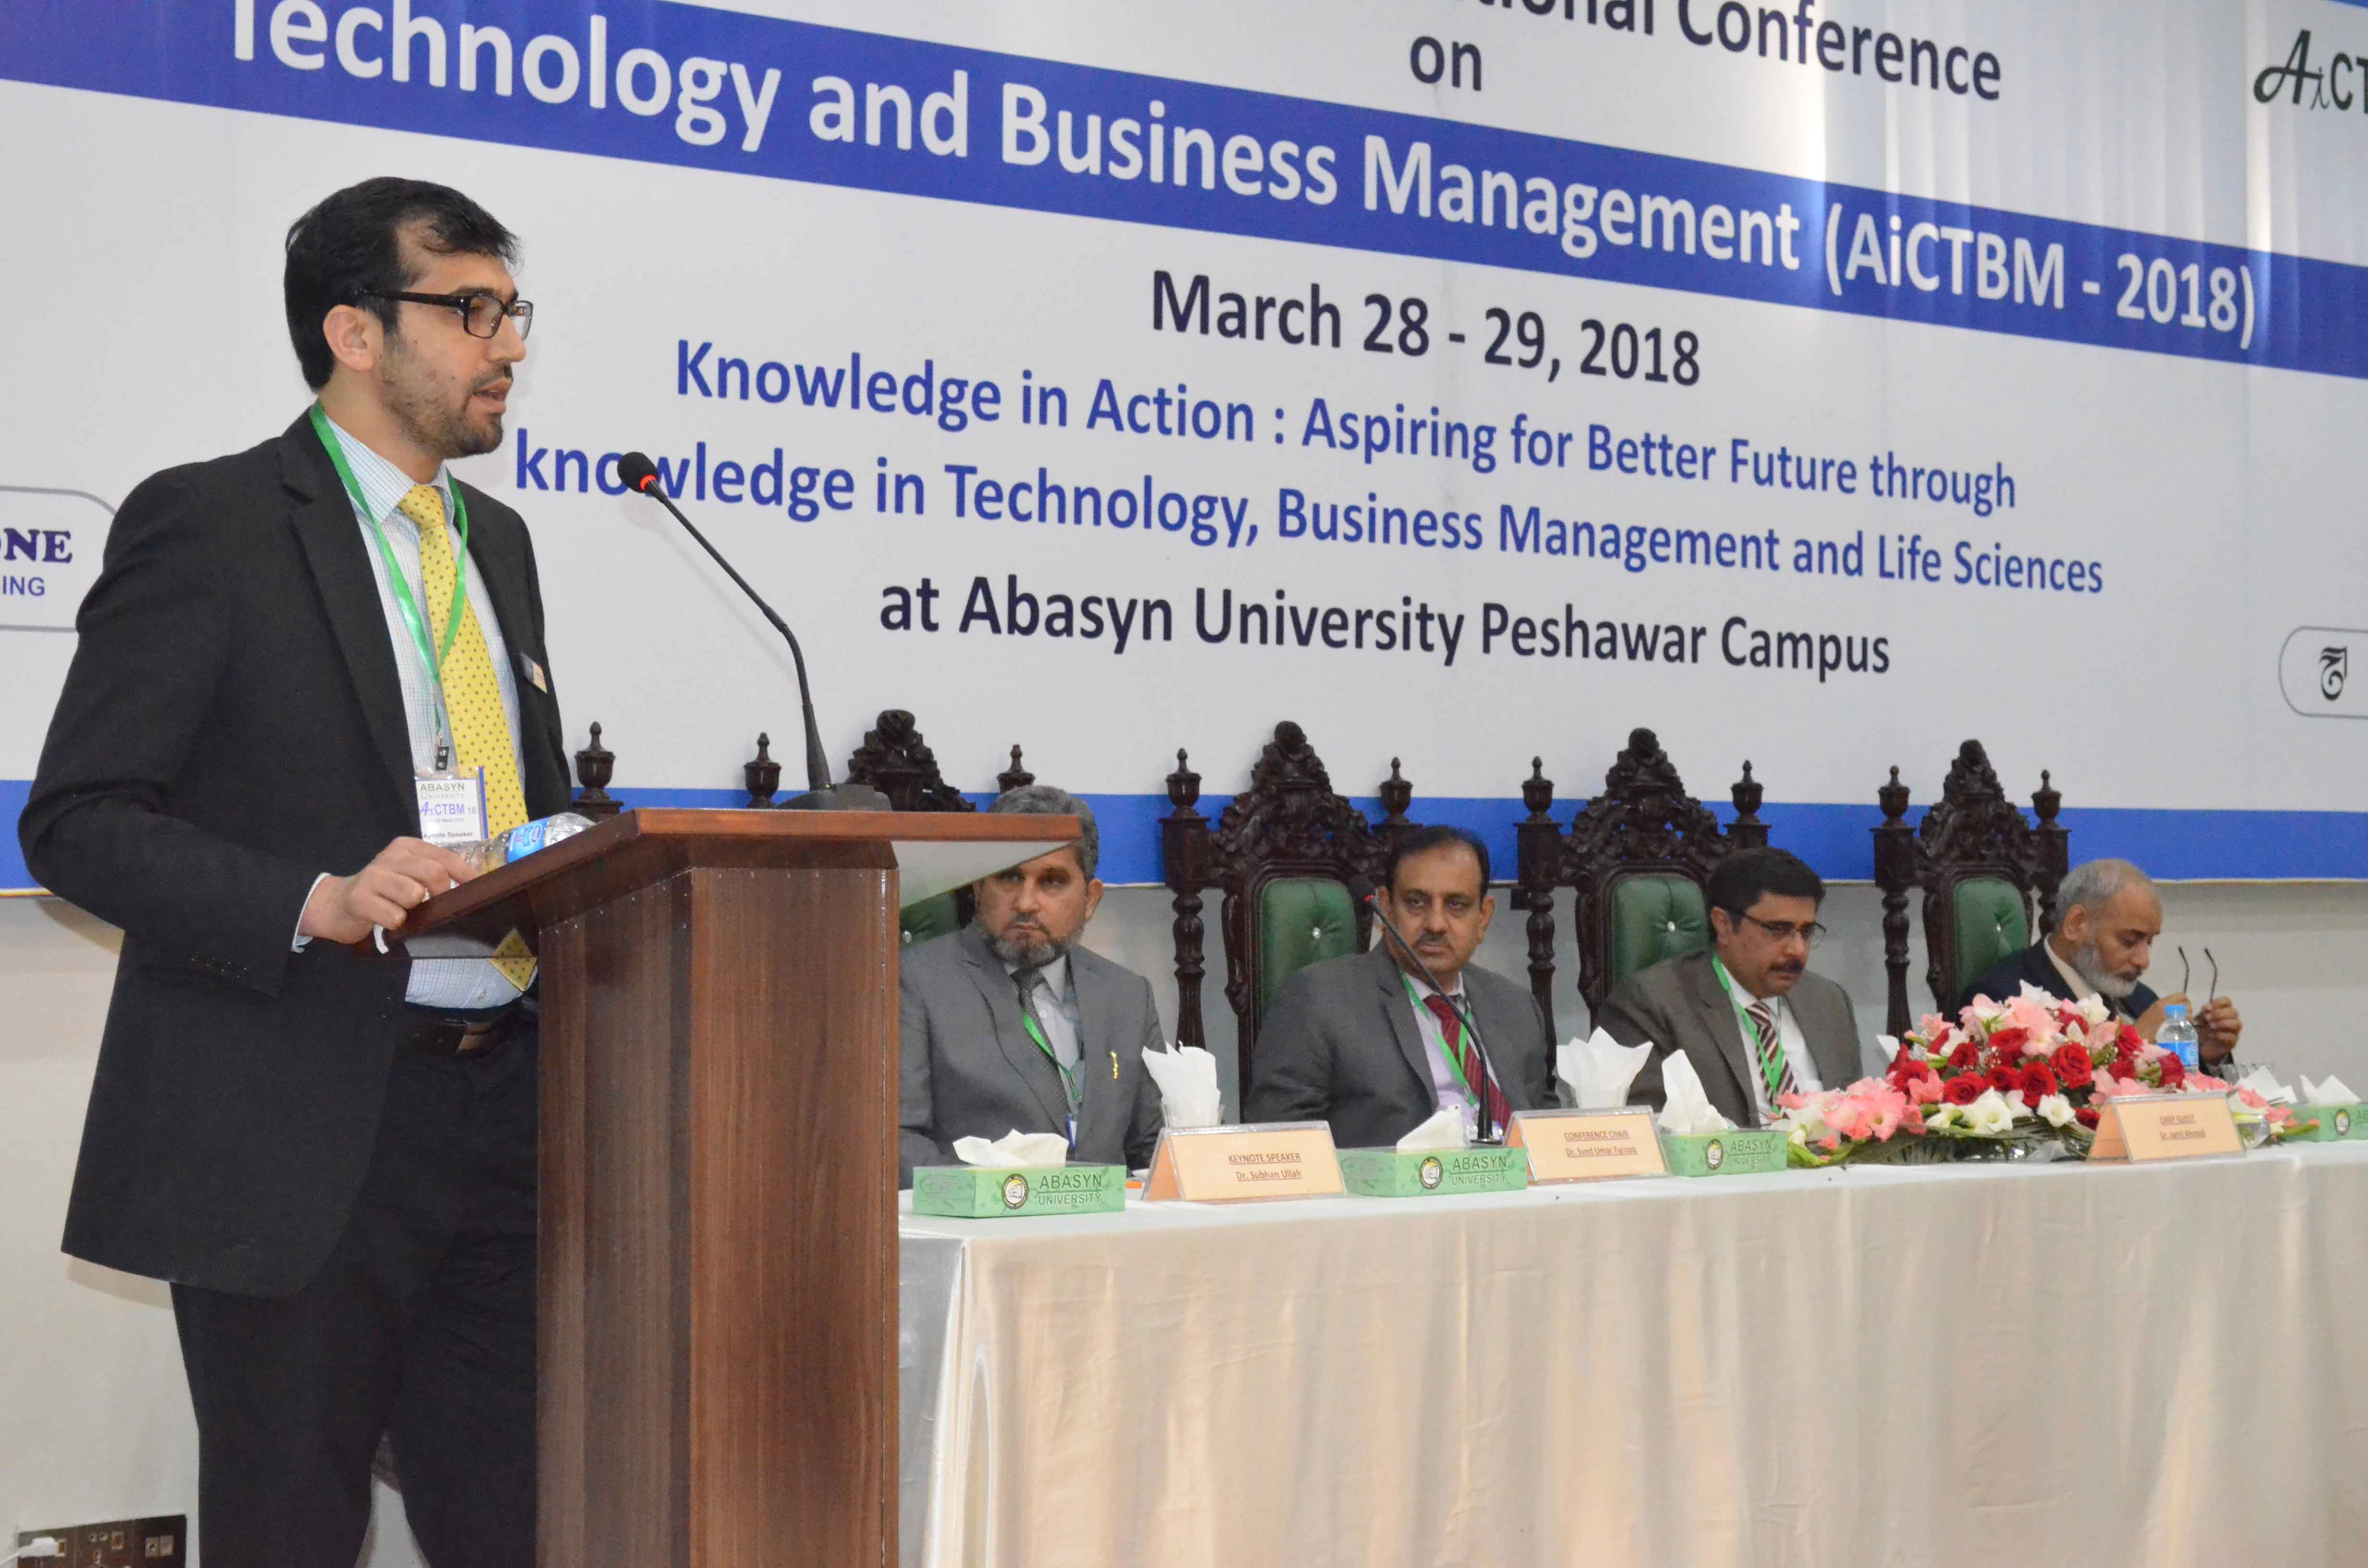 Dr. Subhan Ullah gives speech in the conference